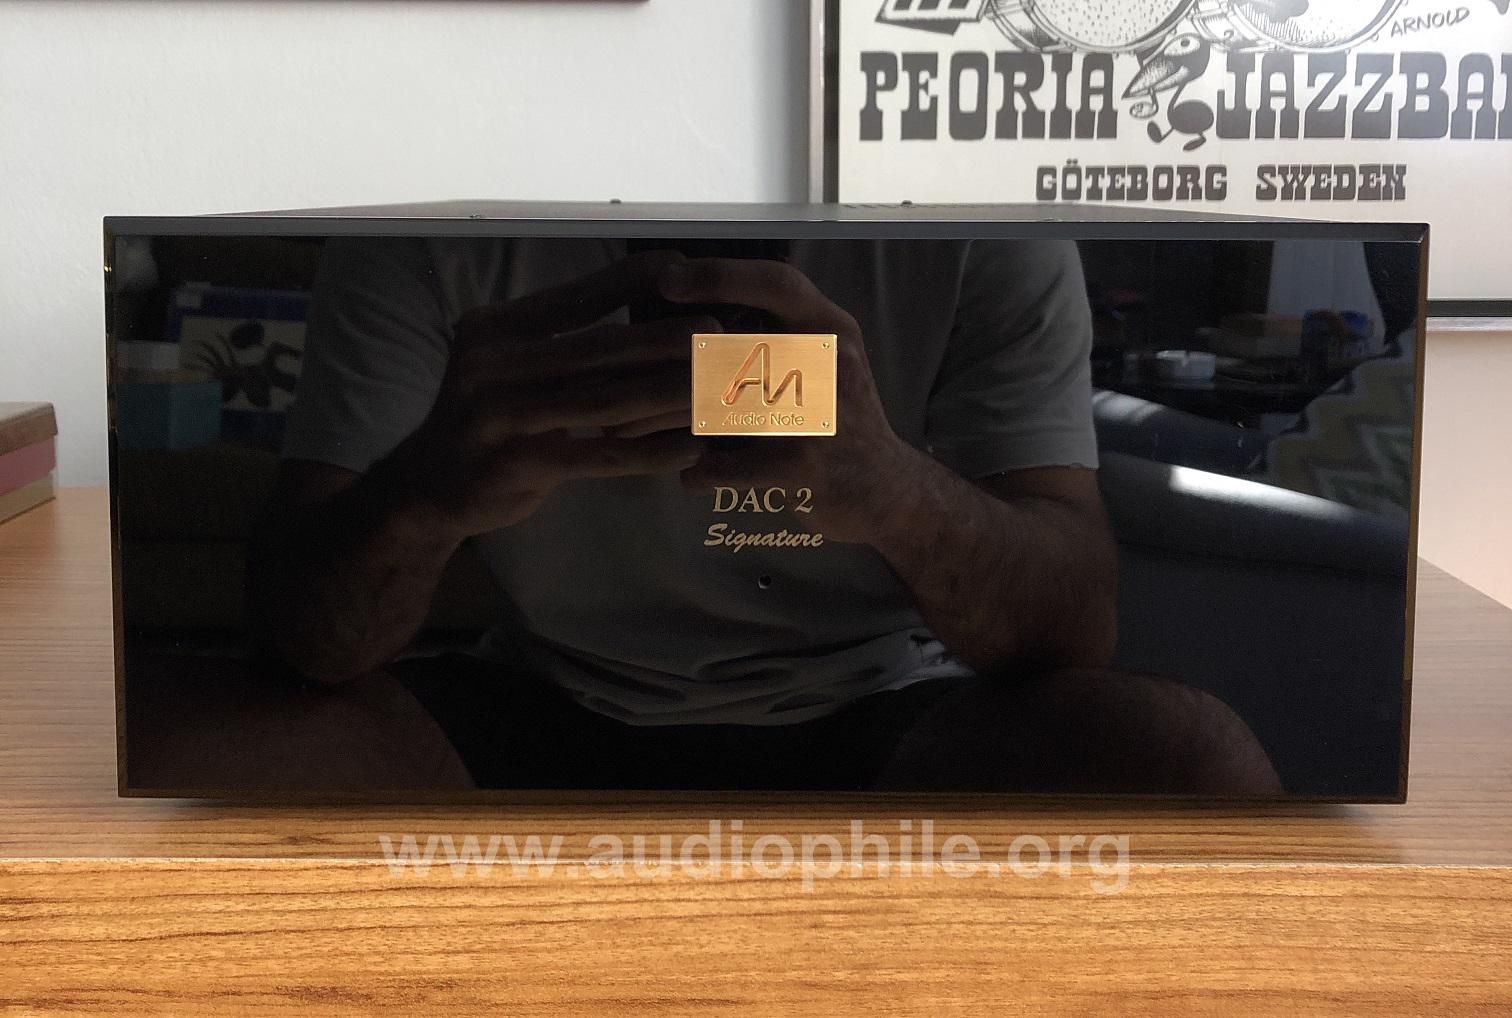 Audio note dac 2 signature